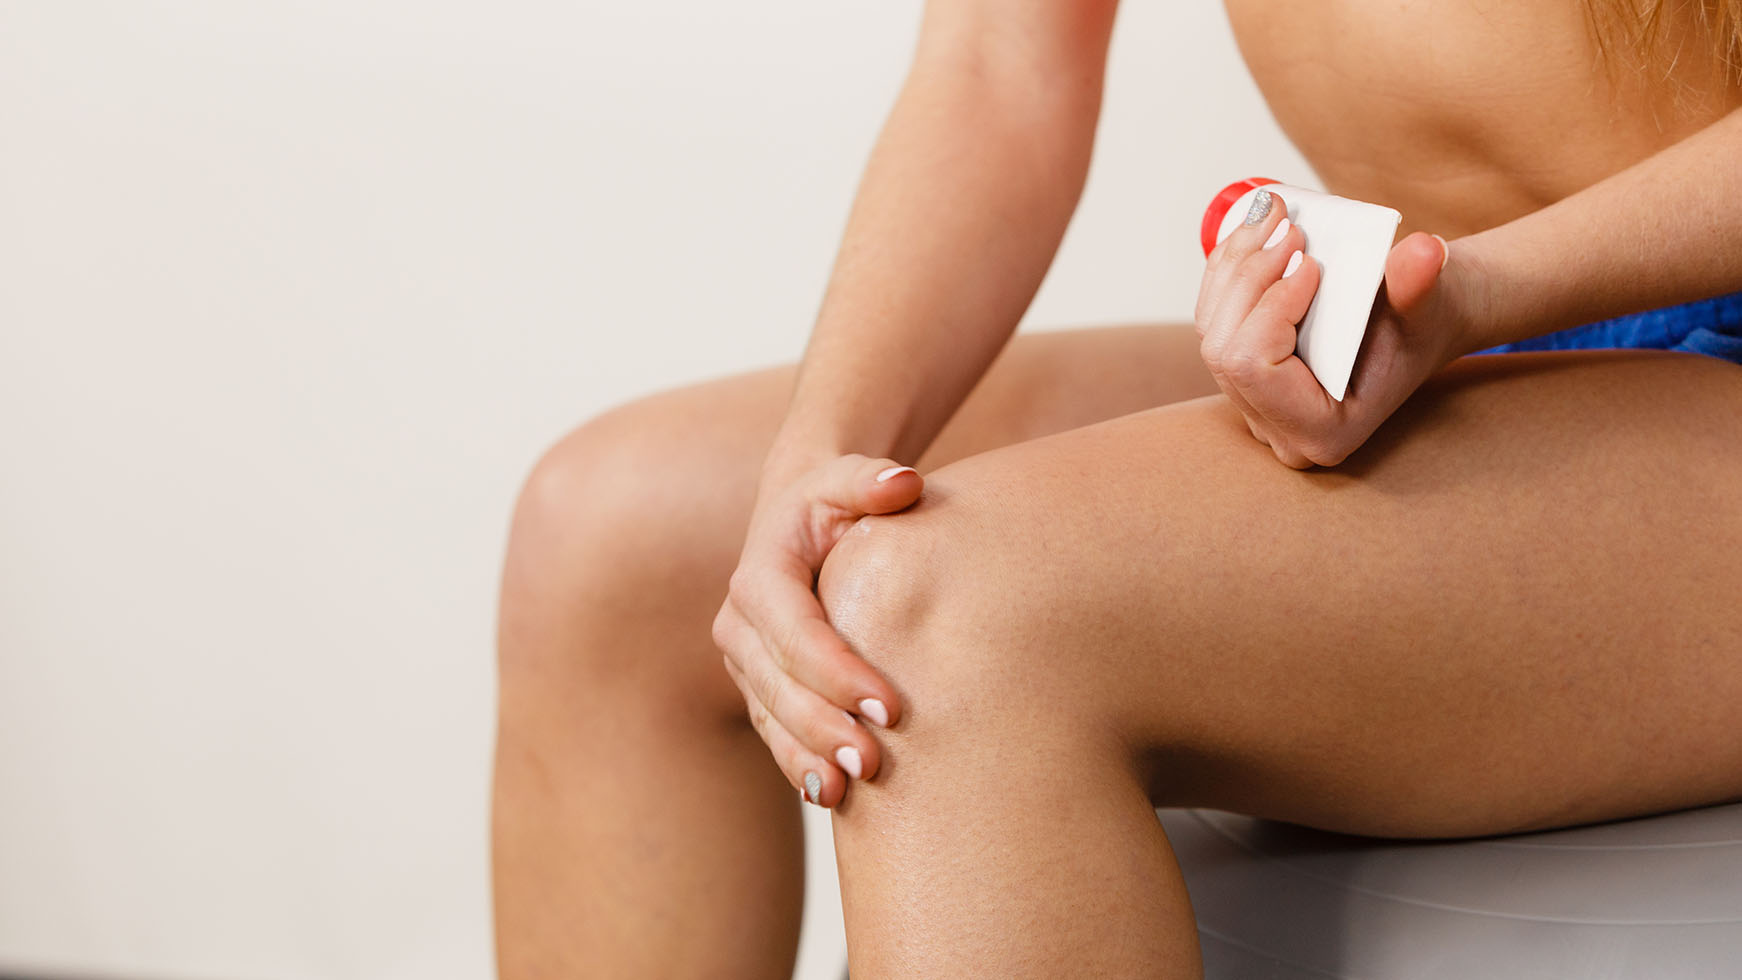 Woman rubbing cream on her painful knee